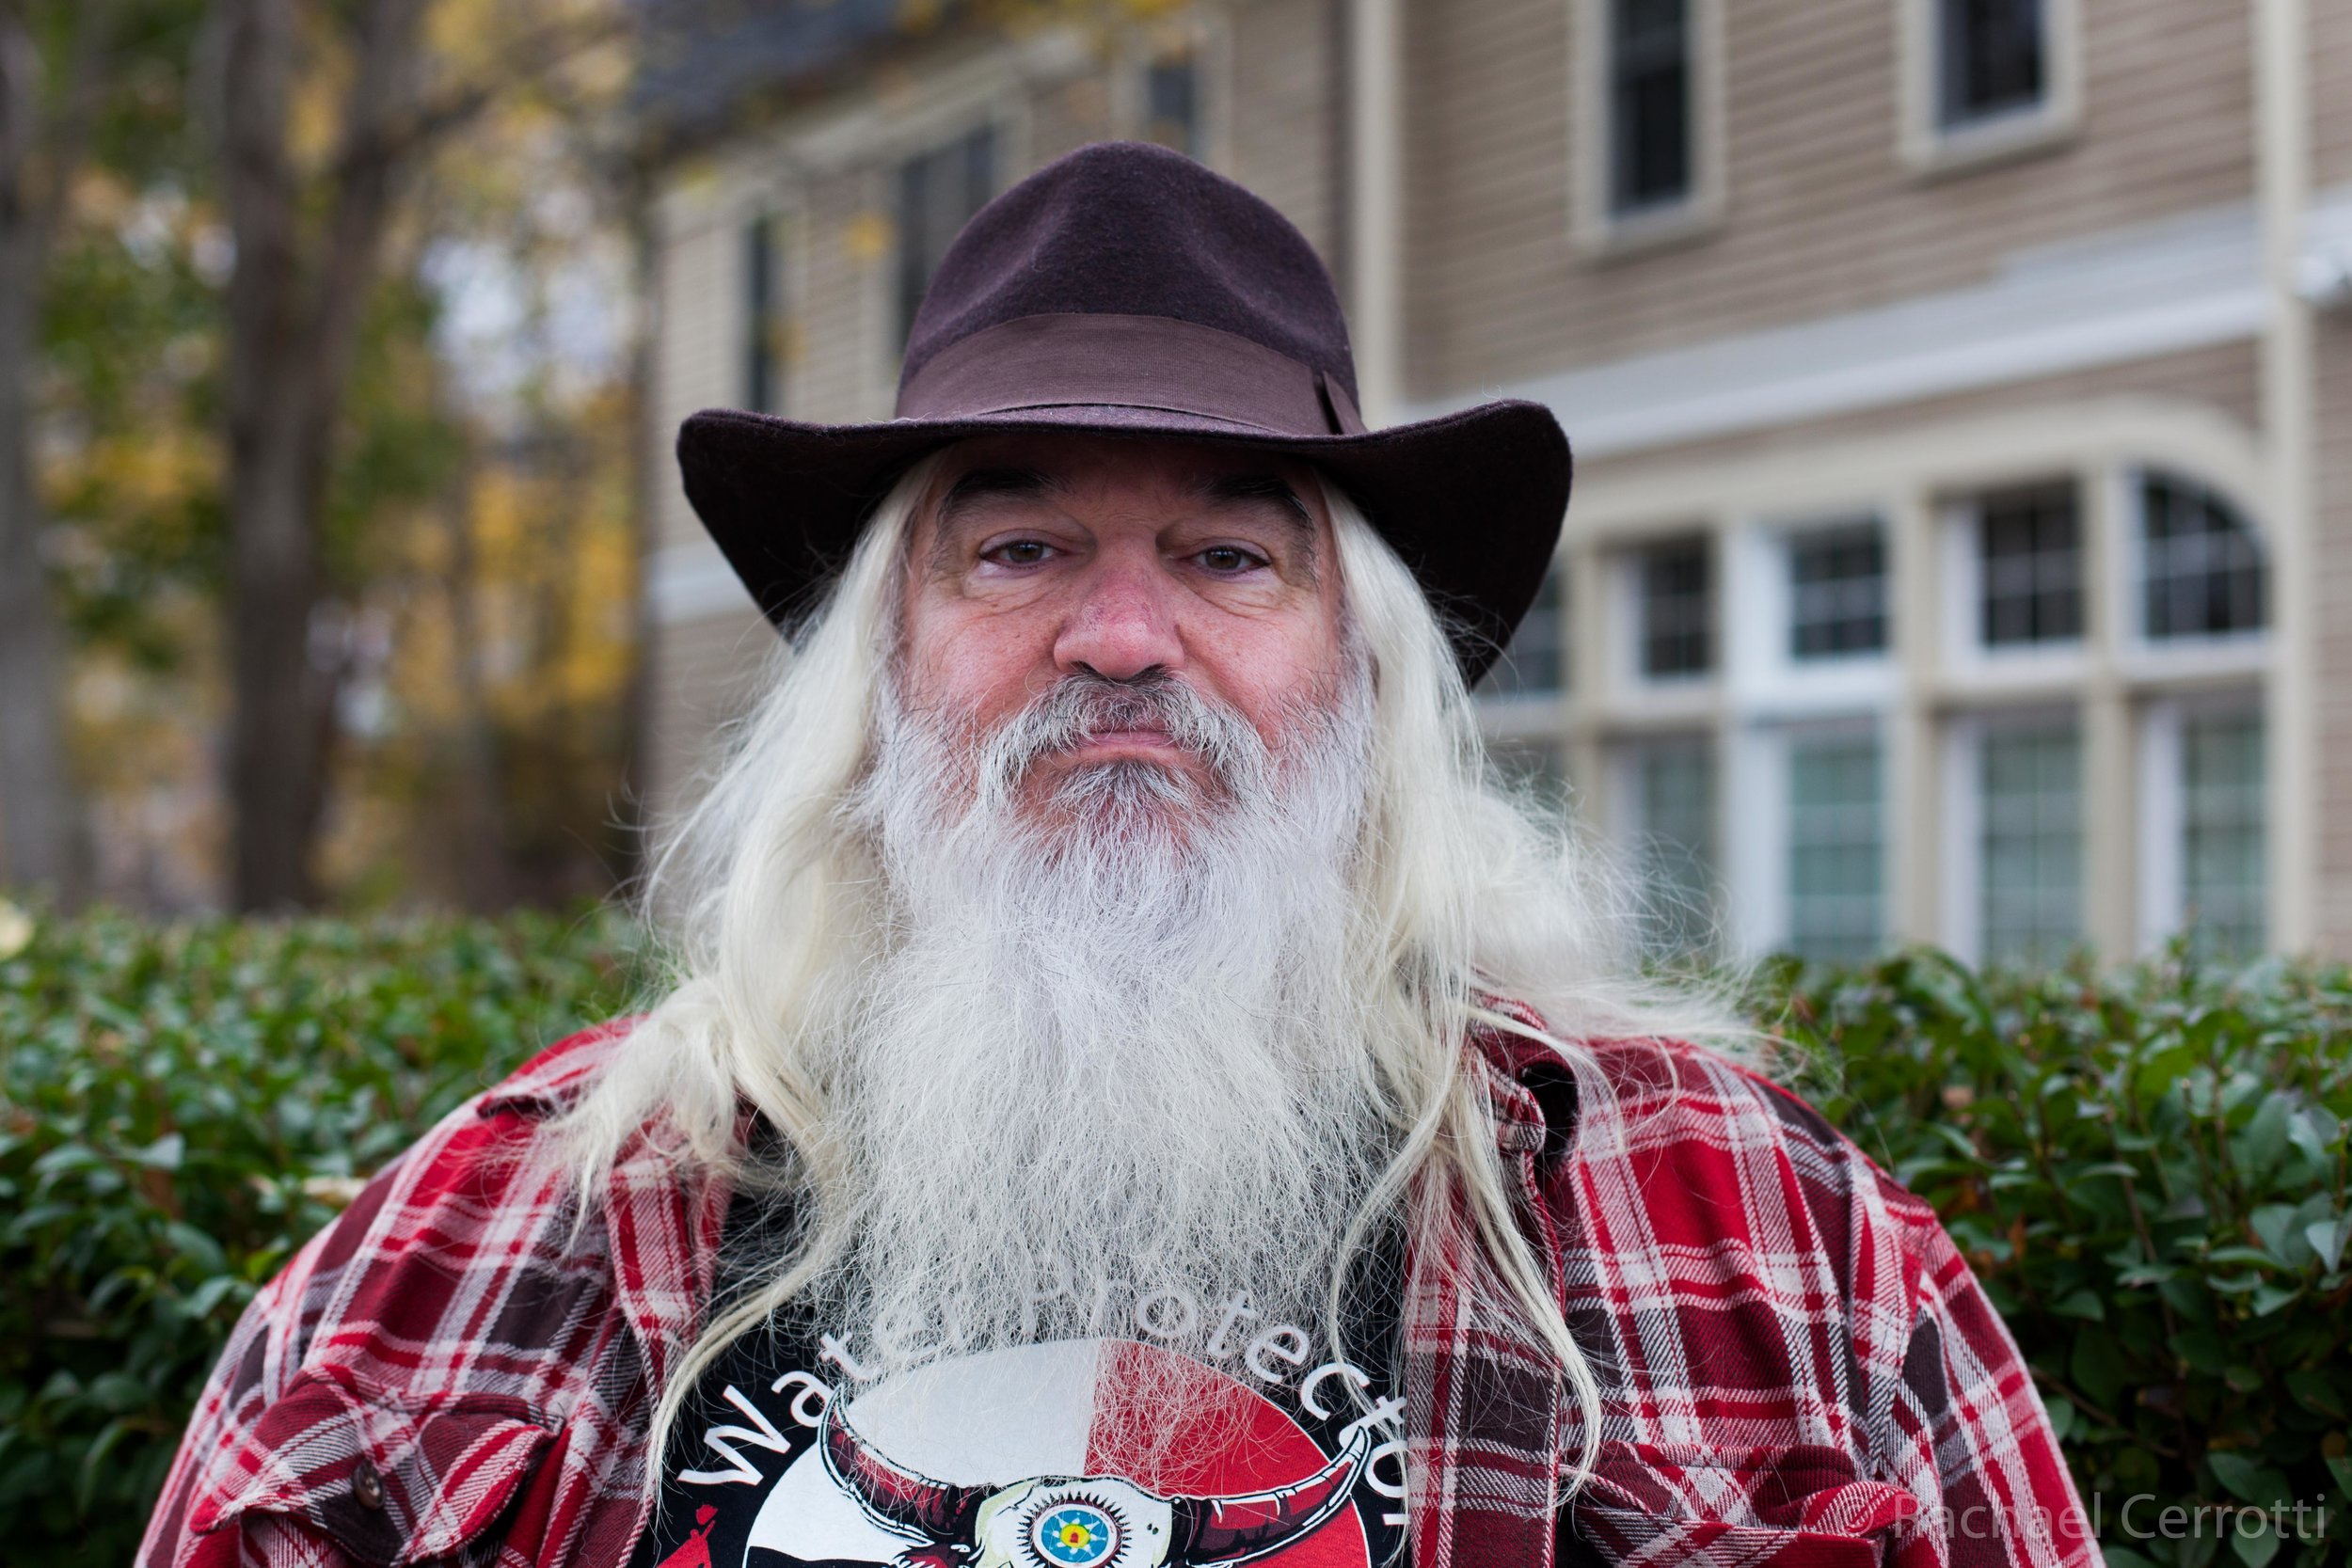 """John Davis, of Holbrook, Massachusetts, has family history in America that dates back to the Pilgrims. For many years he has attended the Day of Mourning as an ally to the many indigenous nations in the Americas. He regularly makes trips out to Pine Ridge Reservation in South Dakota. """"This year I brought all of my grandchildren with me,"""" he said. """"I planted the seed."""""""